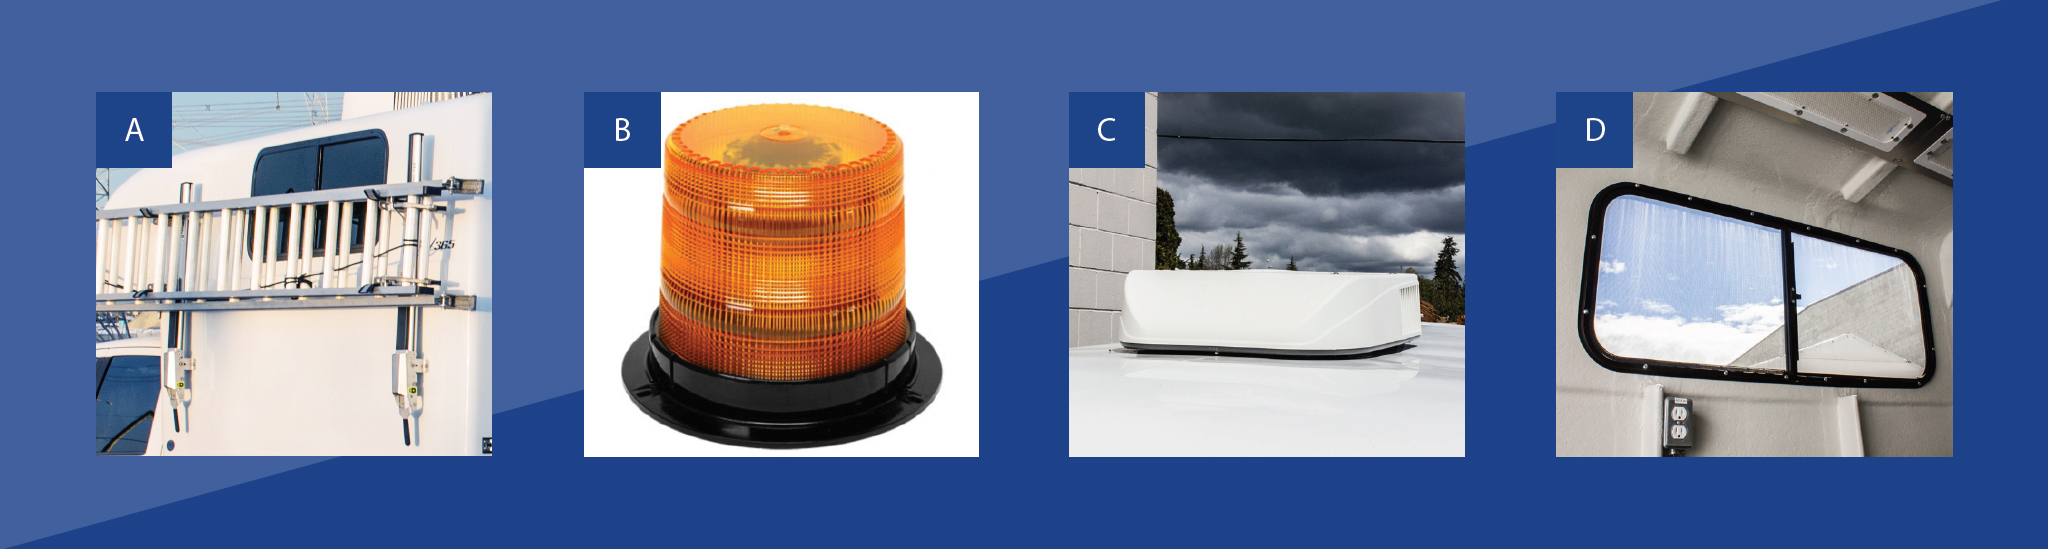 Feature image for sterling's fiber optic truck cap first set of features. Side mount clamping ladder rack, amber beacon light, roof mount air conditioning unit and camper-style window.